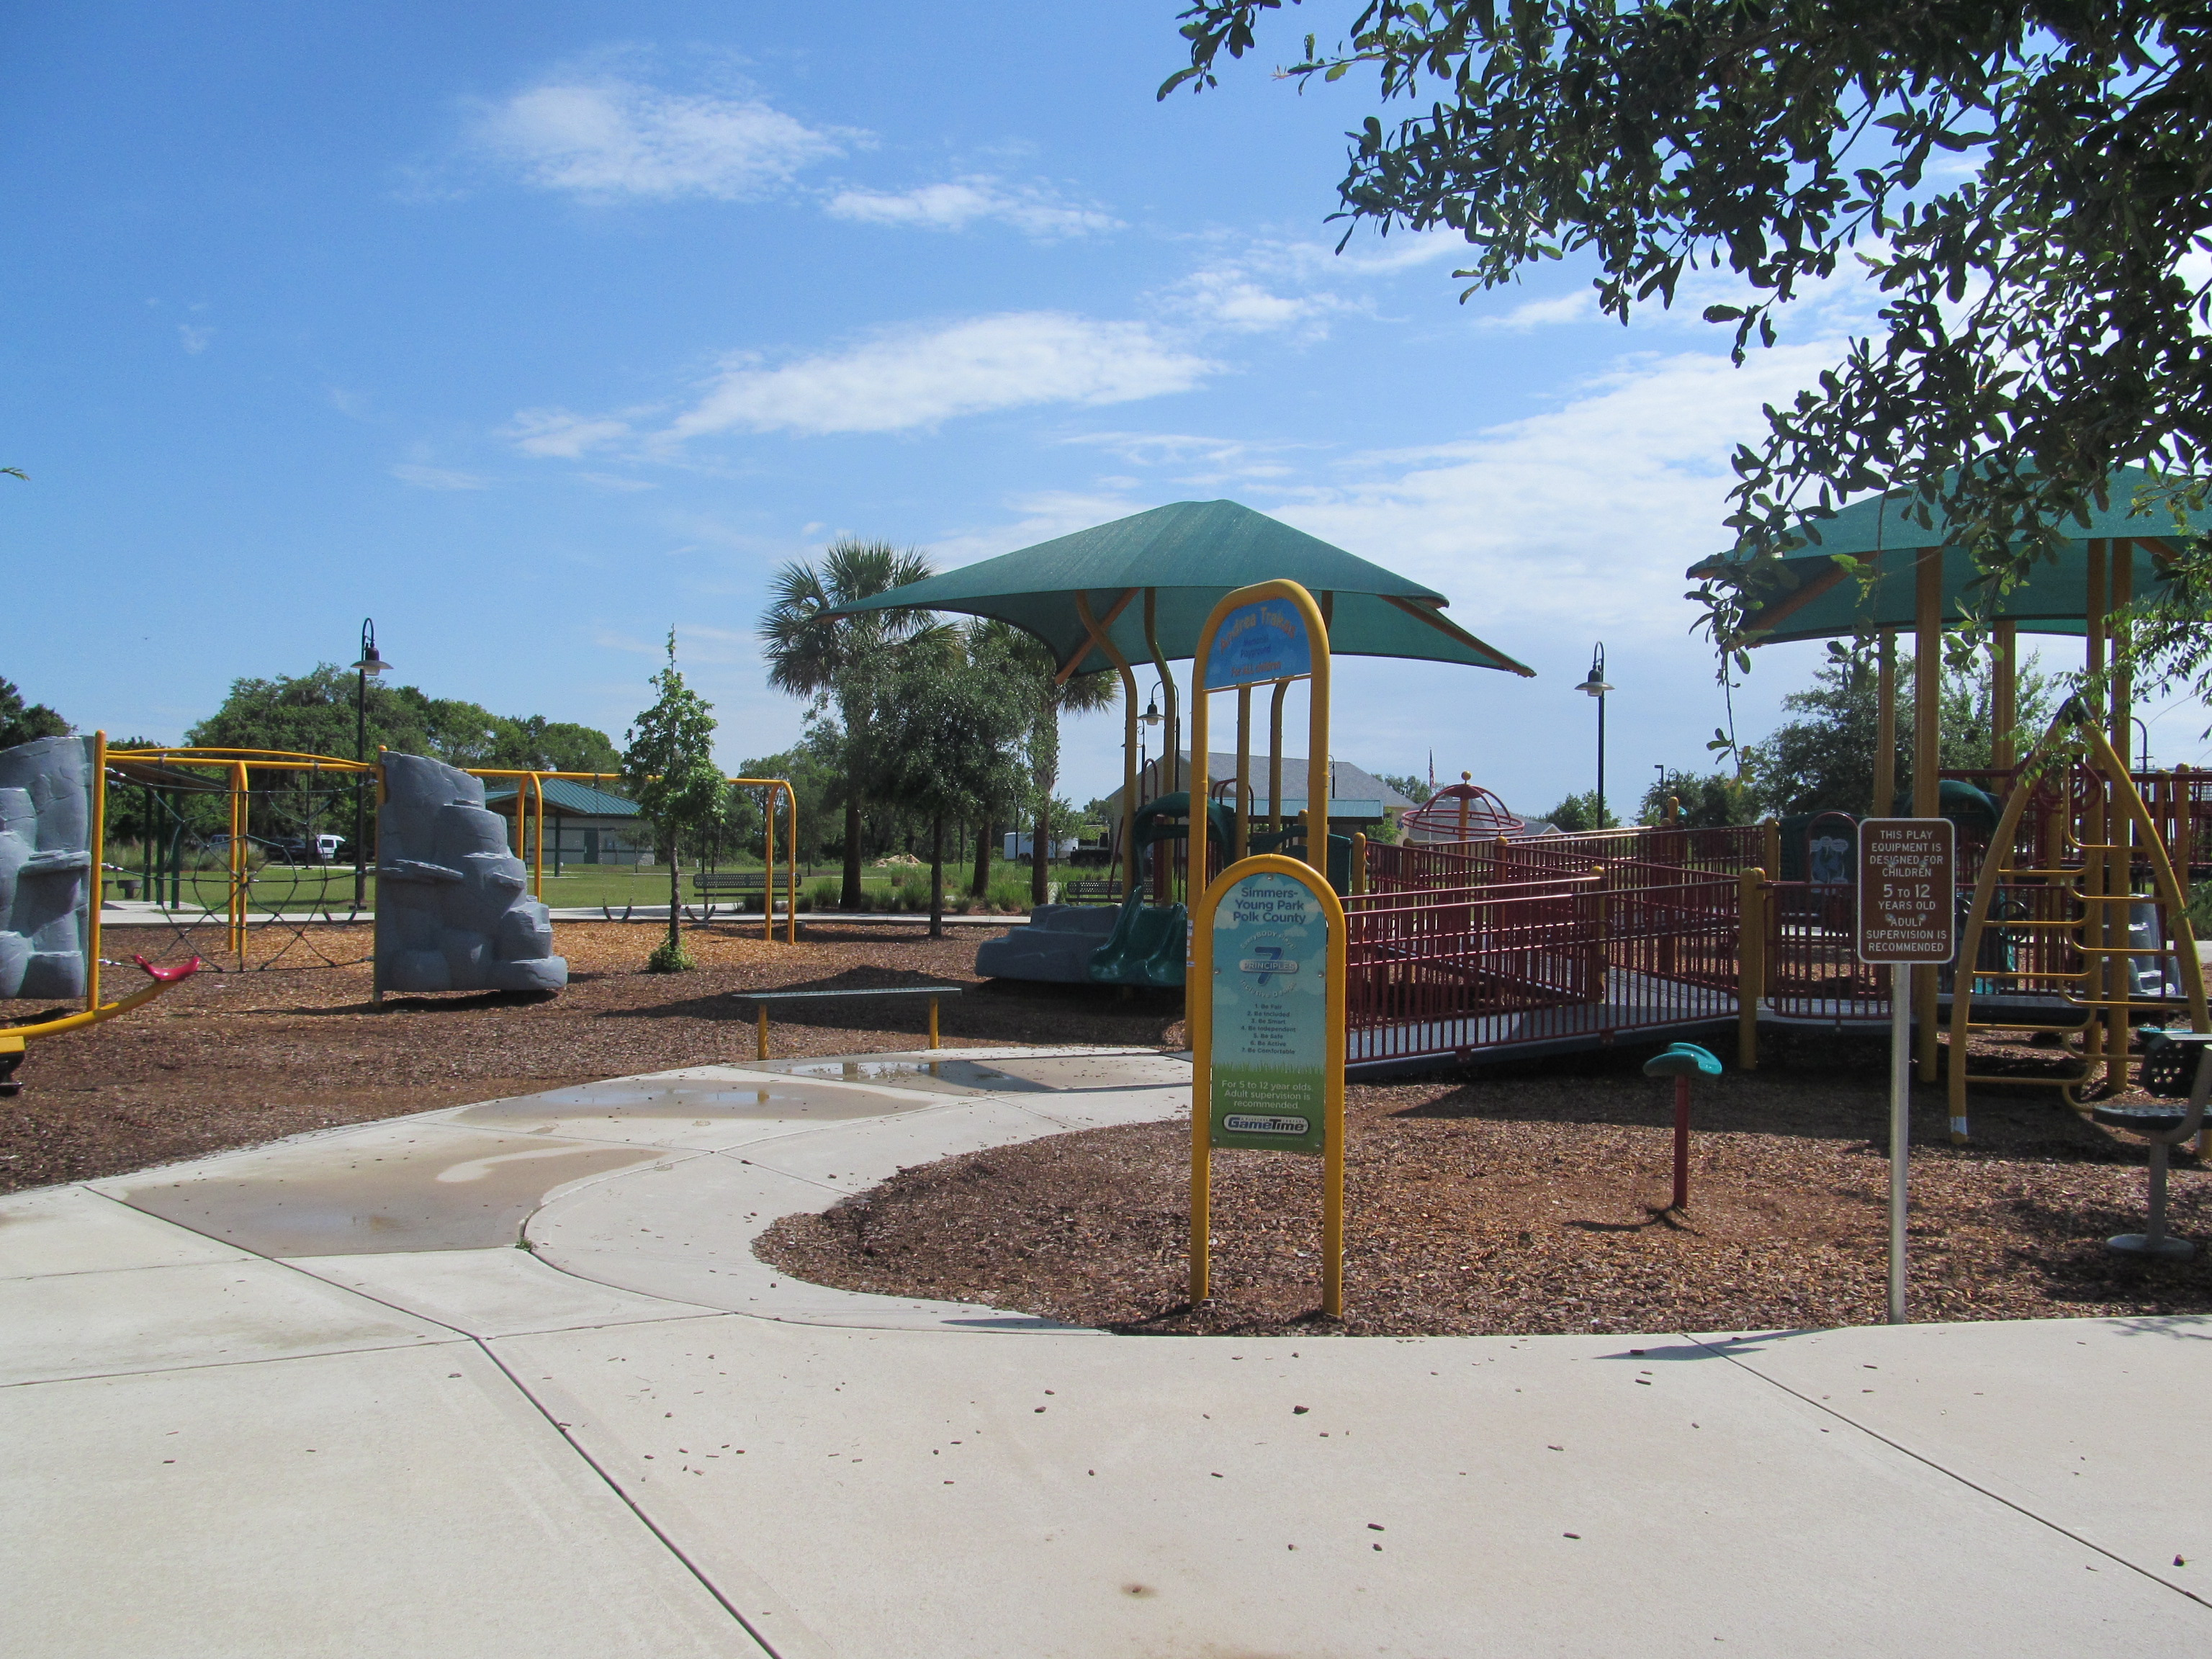 The playground at Simmers-Young Park